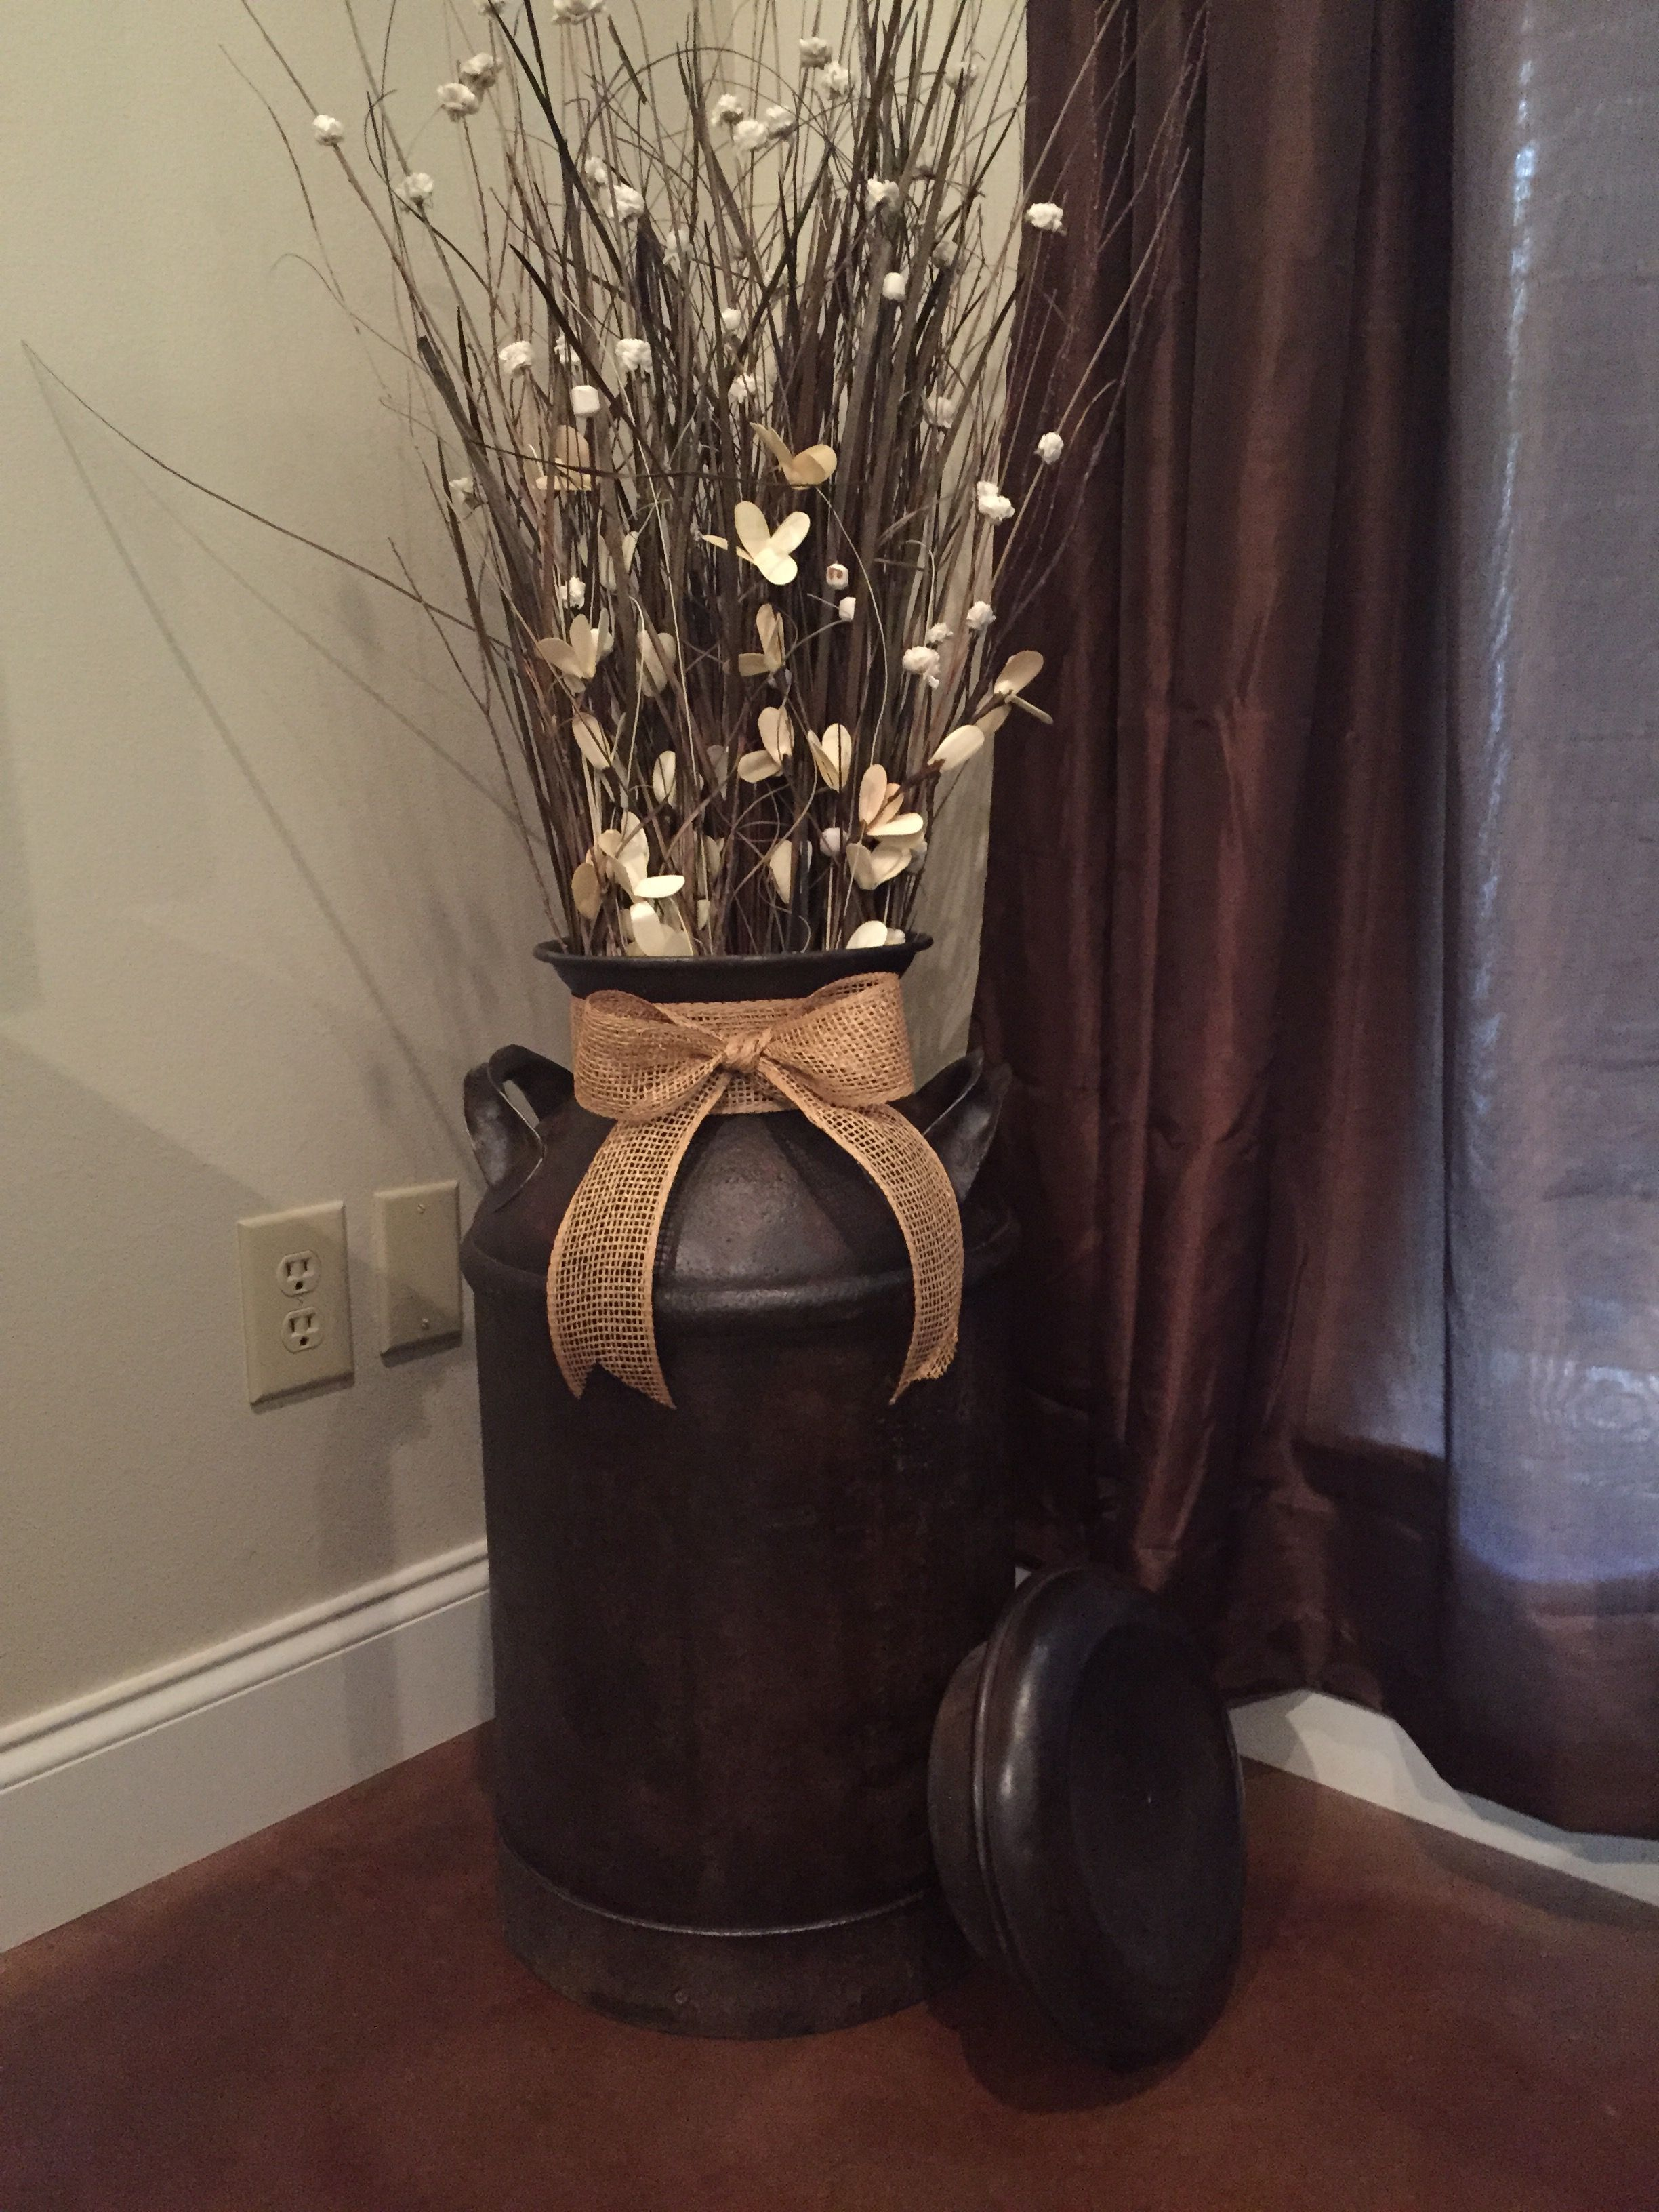 Antique Milk Can Turned Into Home Decor Milk Can Decor Home Decor Decor